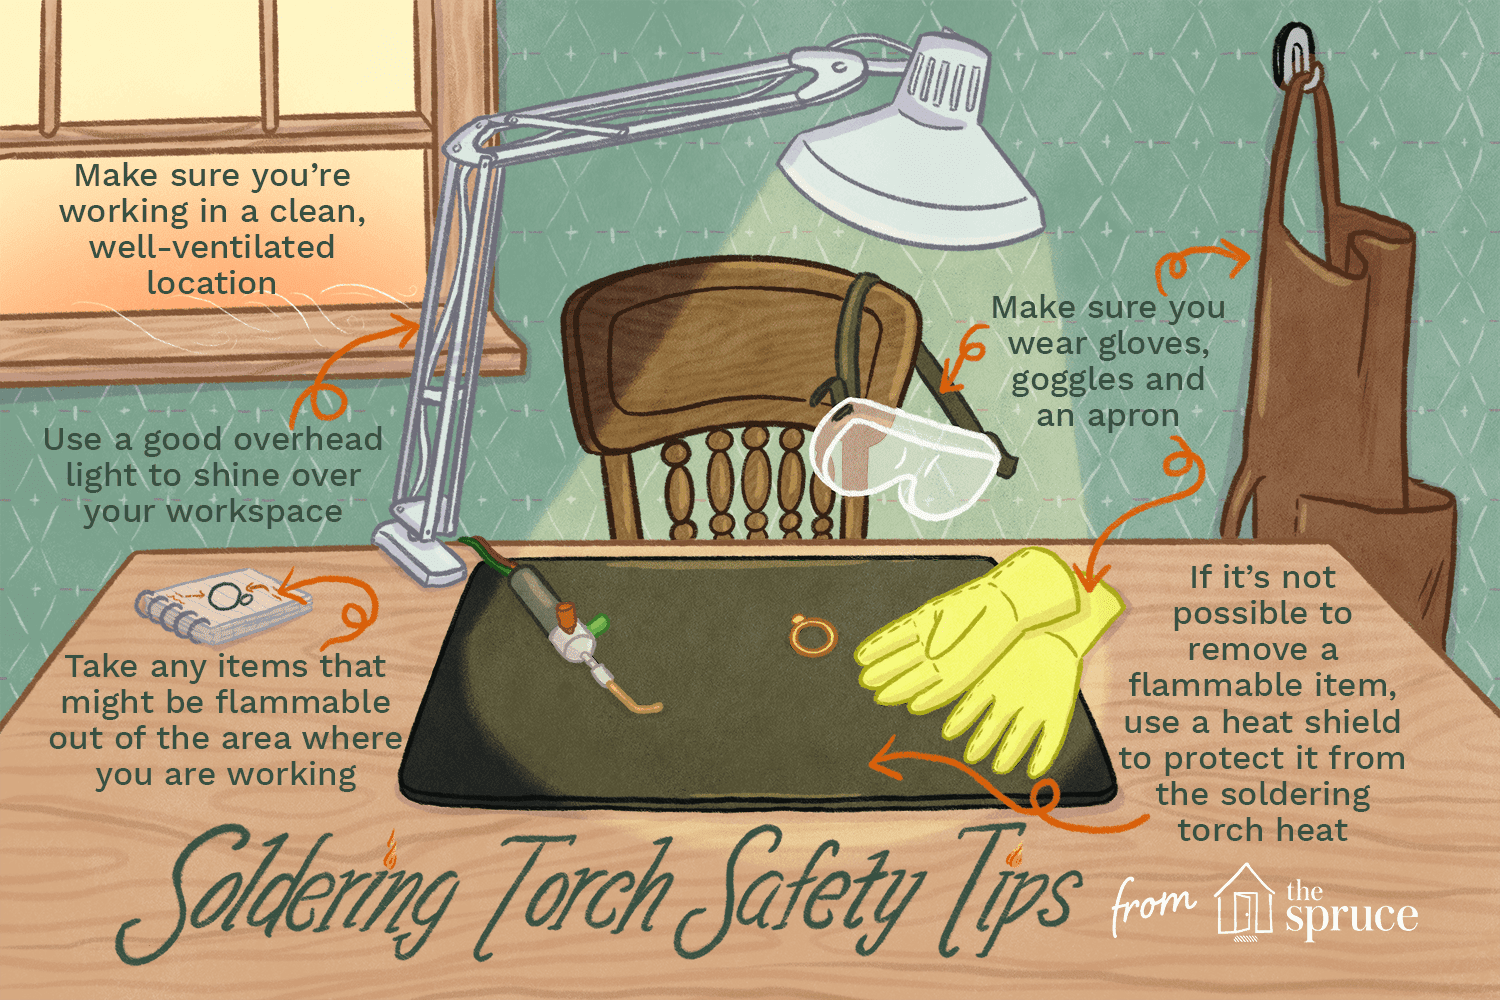 Illustration of soldering torch safety tips